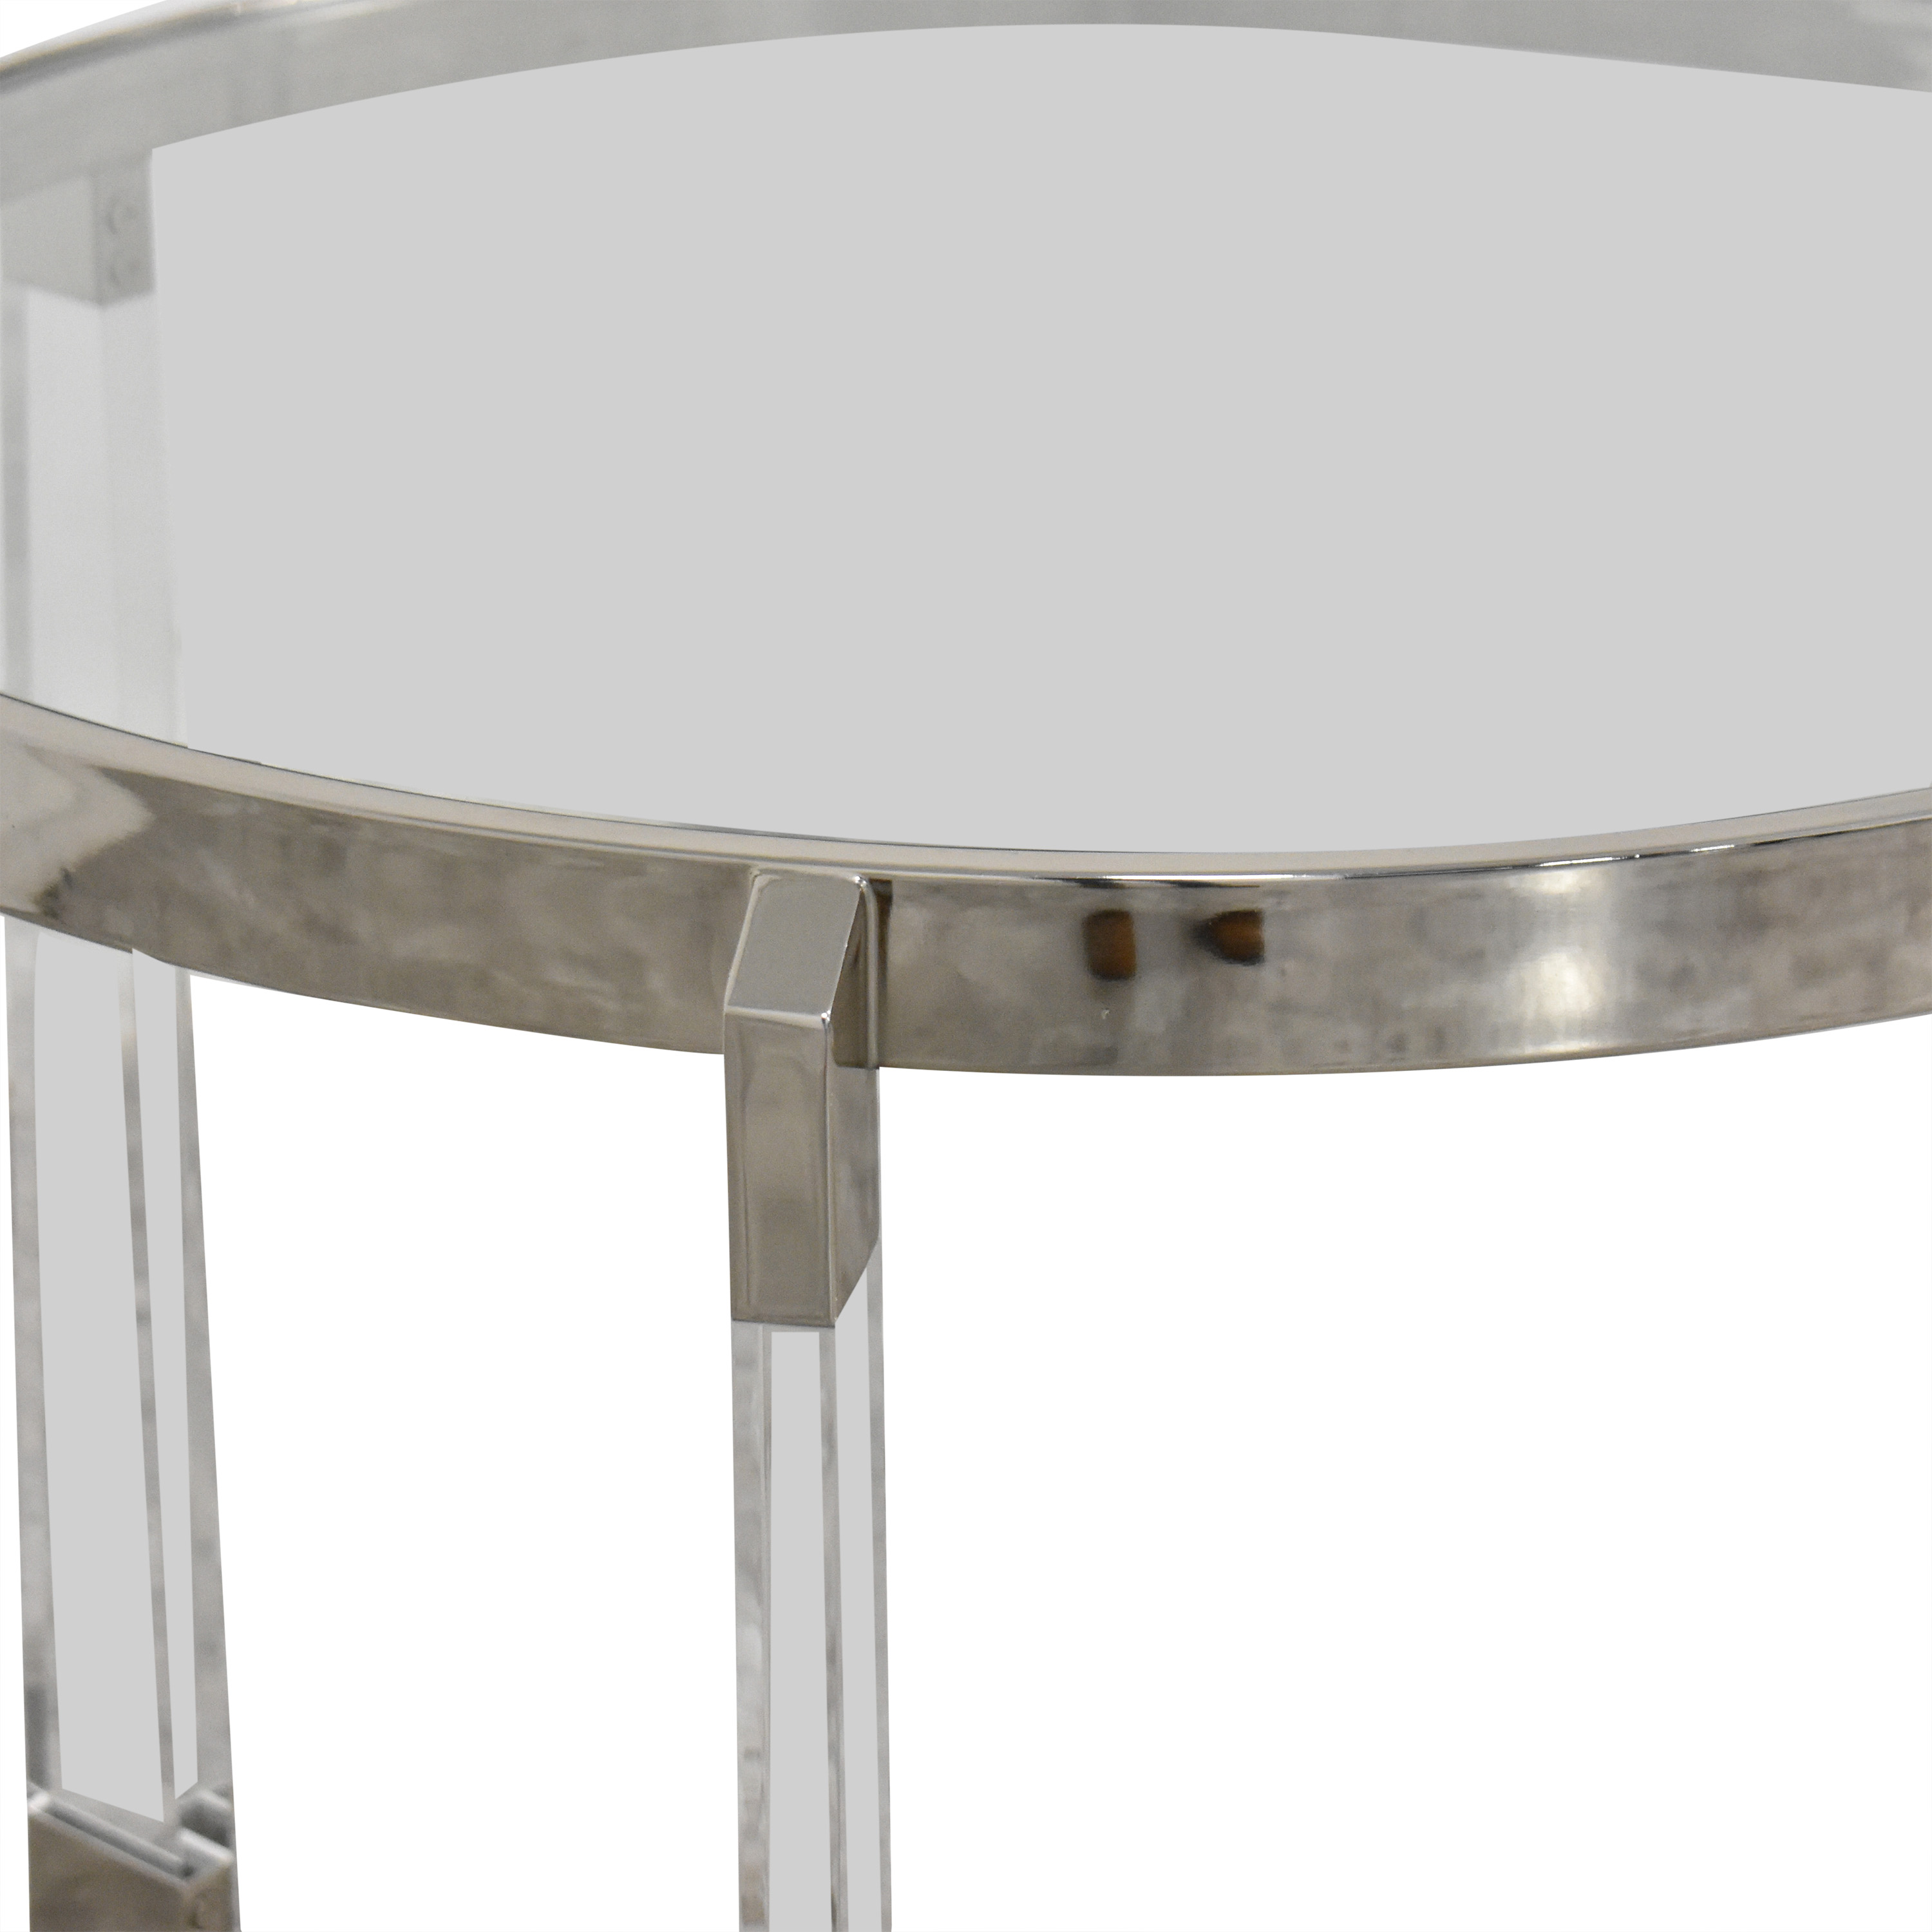 Round Side Table with Transparent Surface ma